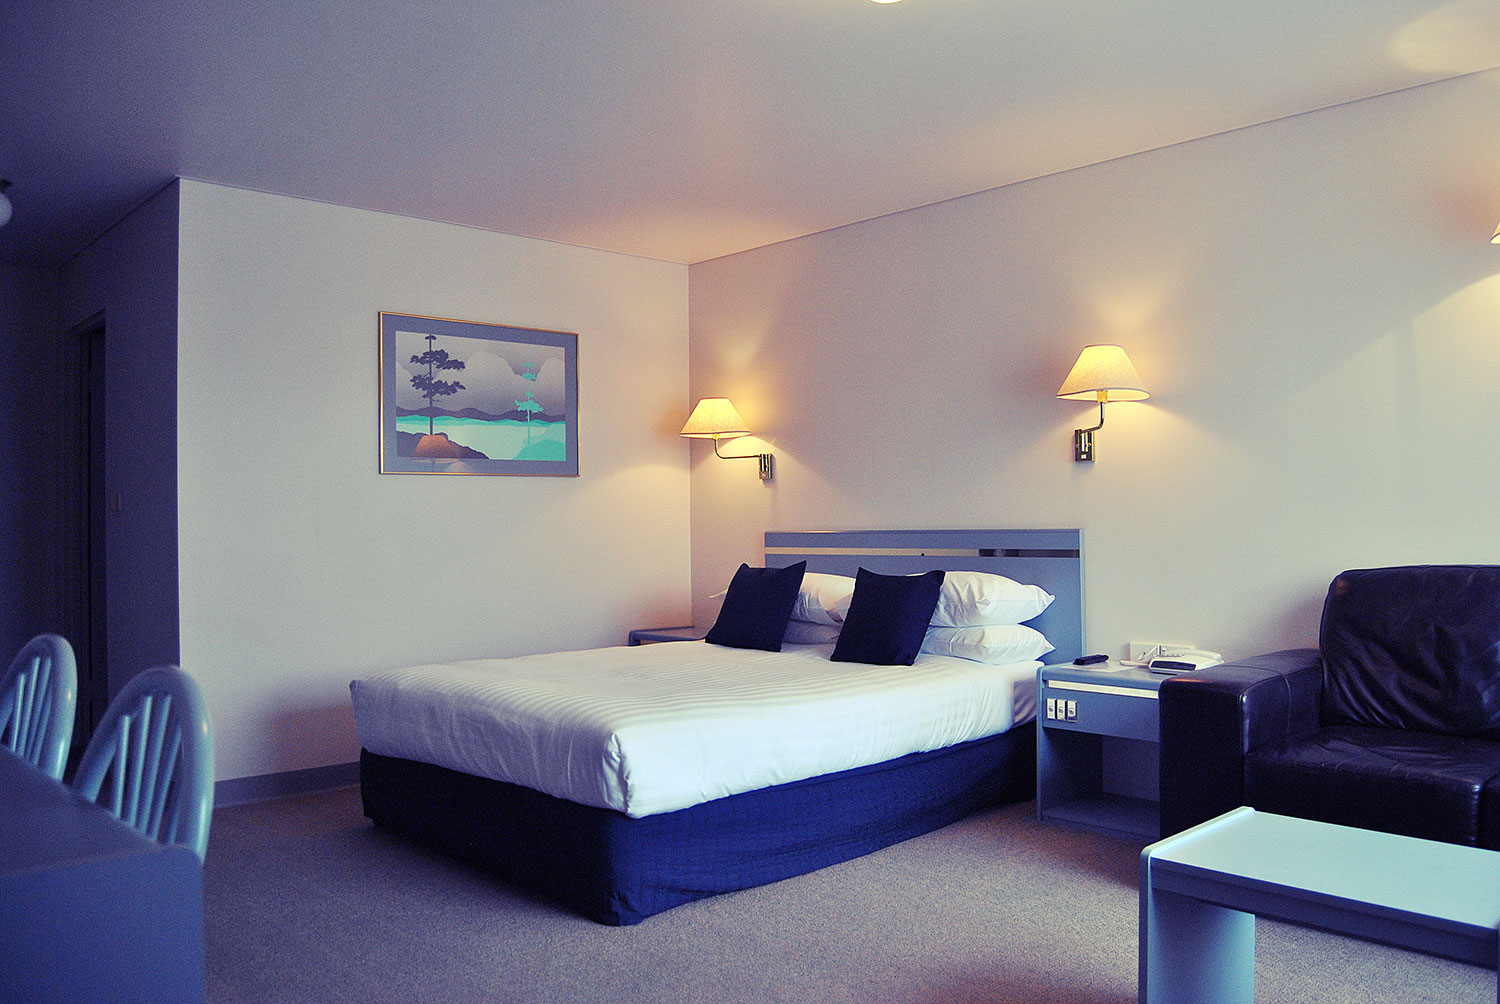 WEEKEND PACKAGE - All included accommodation and dining package for $200 per night.